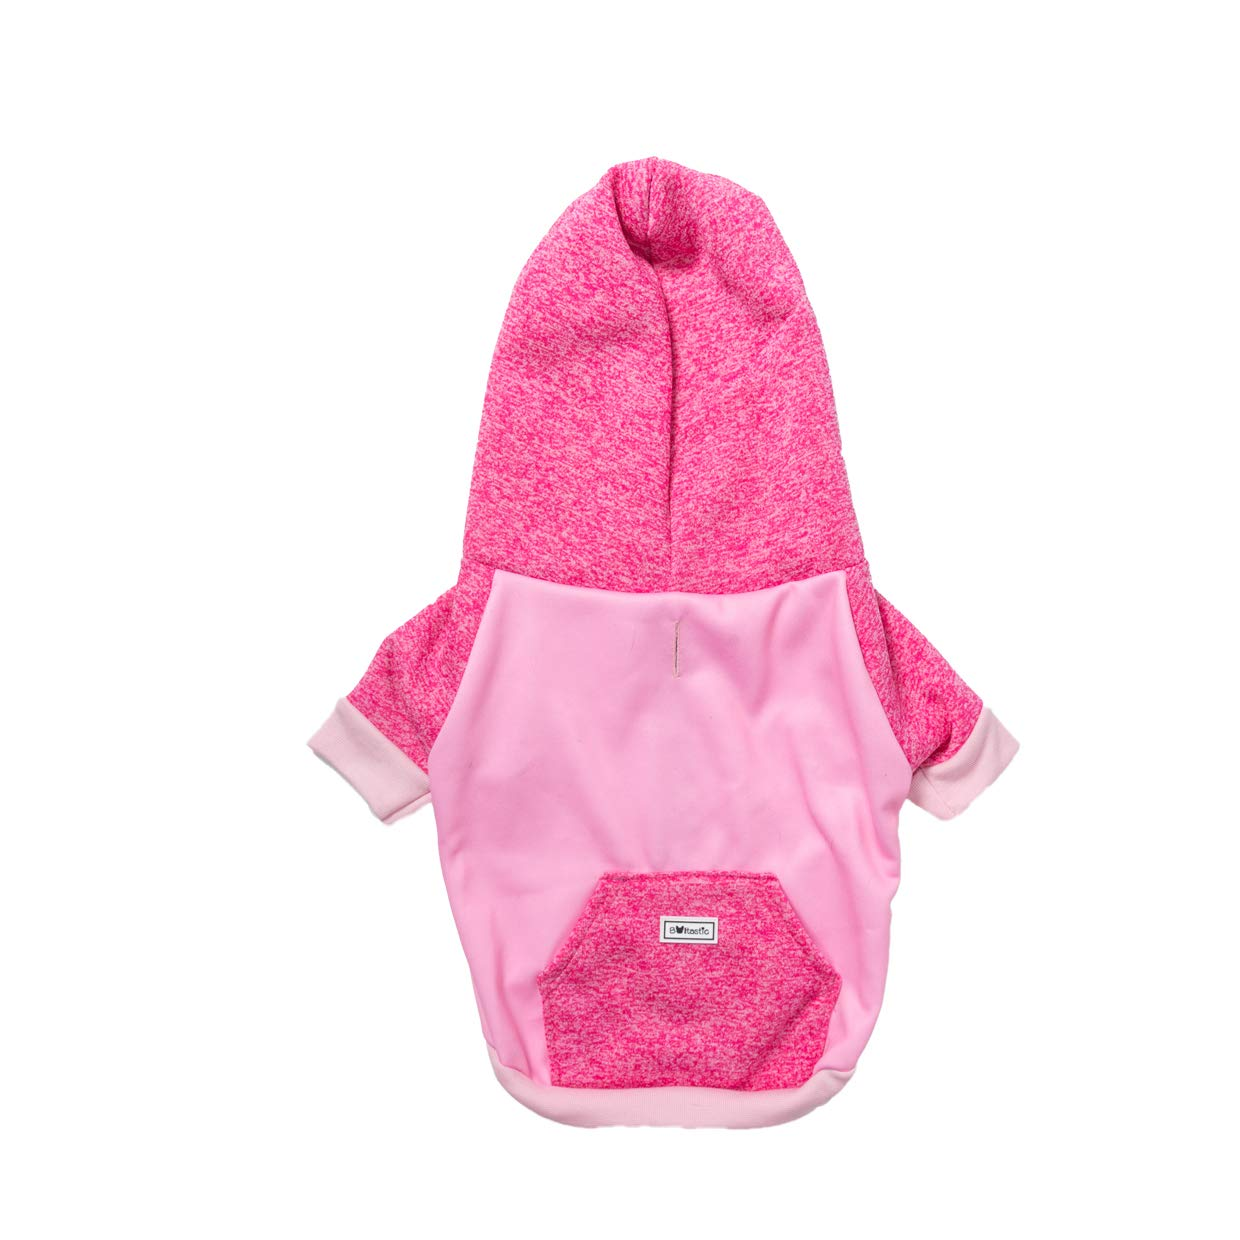 Bulltastic Winter Hoodies for Small Dog Breeds - Cool & Stylish Dog Fashion Jumper - Premium Quality, Comfortable, with Zipper - Designed to Allow Easy Leash Attachment (M)